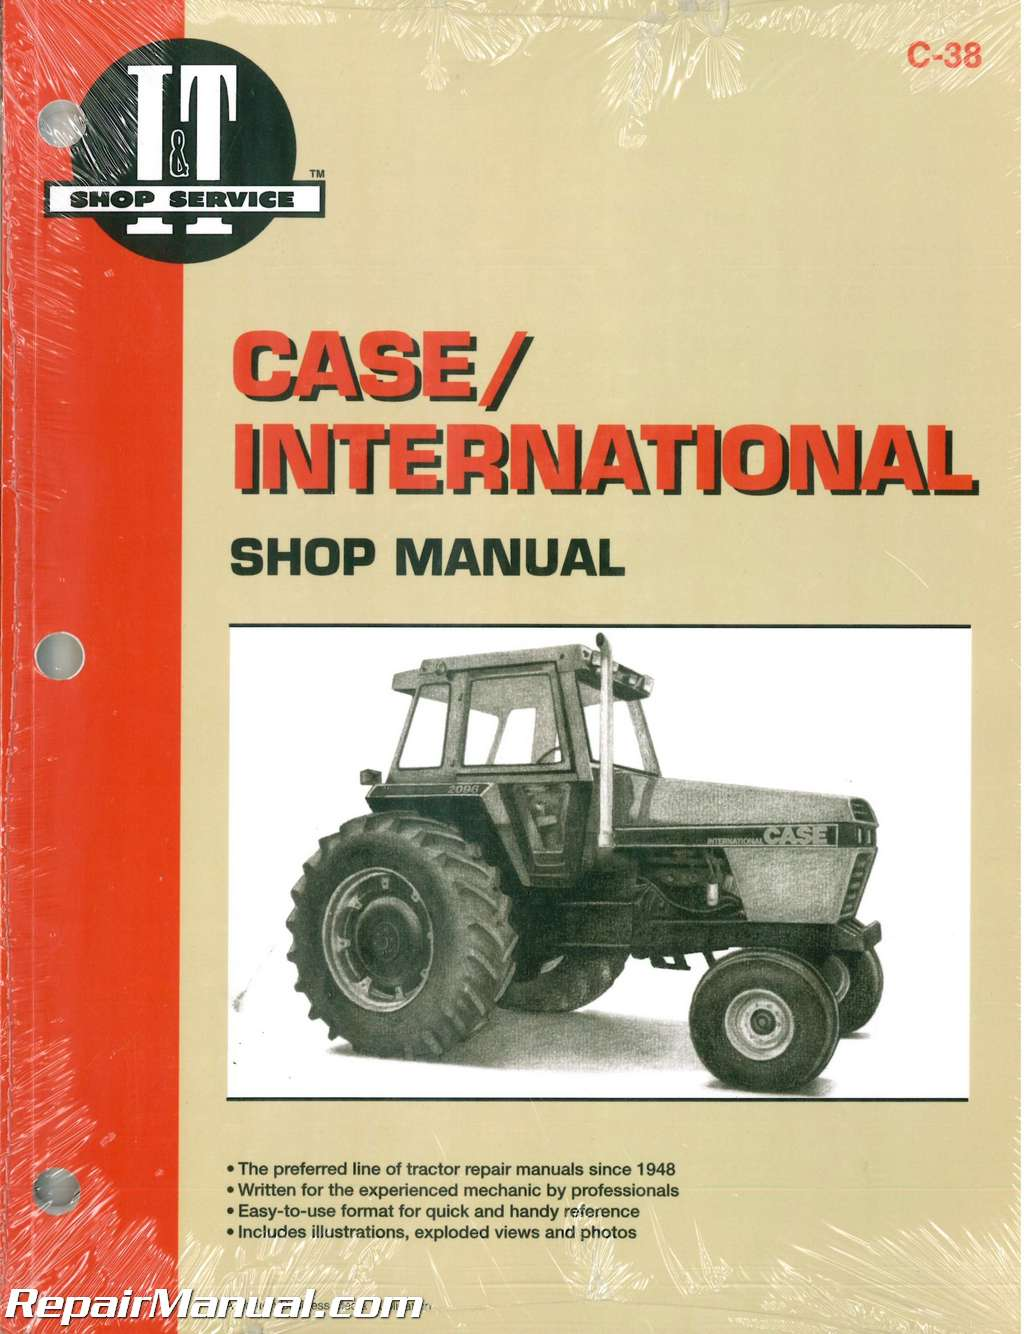 Case Ih Wiring Schematic For 2394 Archive Of Automotive International 1896 And 2096 Tractor Workshop Manual Rh Repairmanual Com